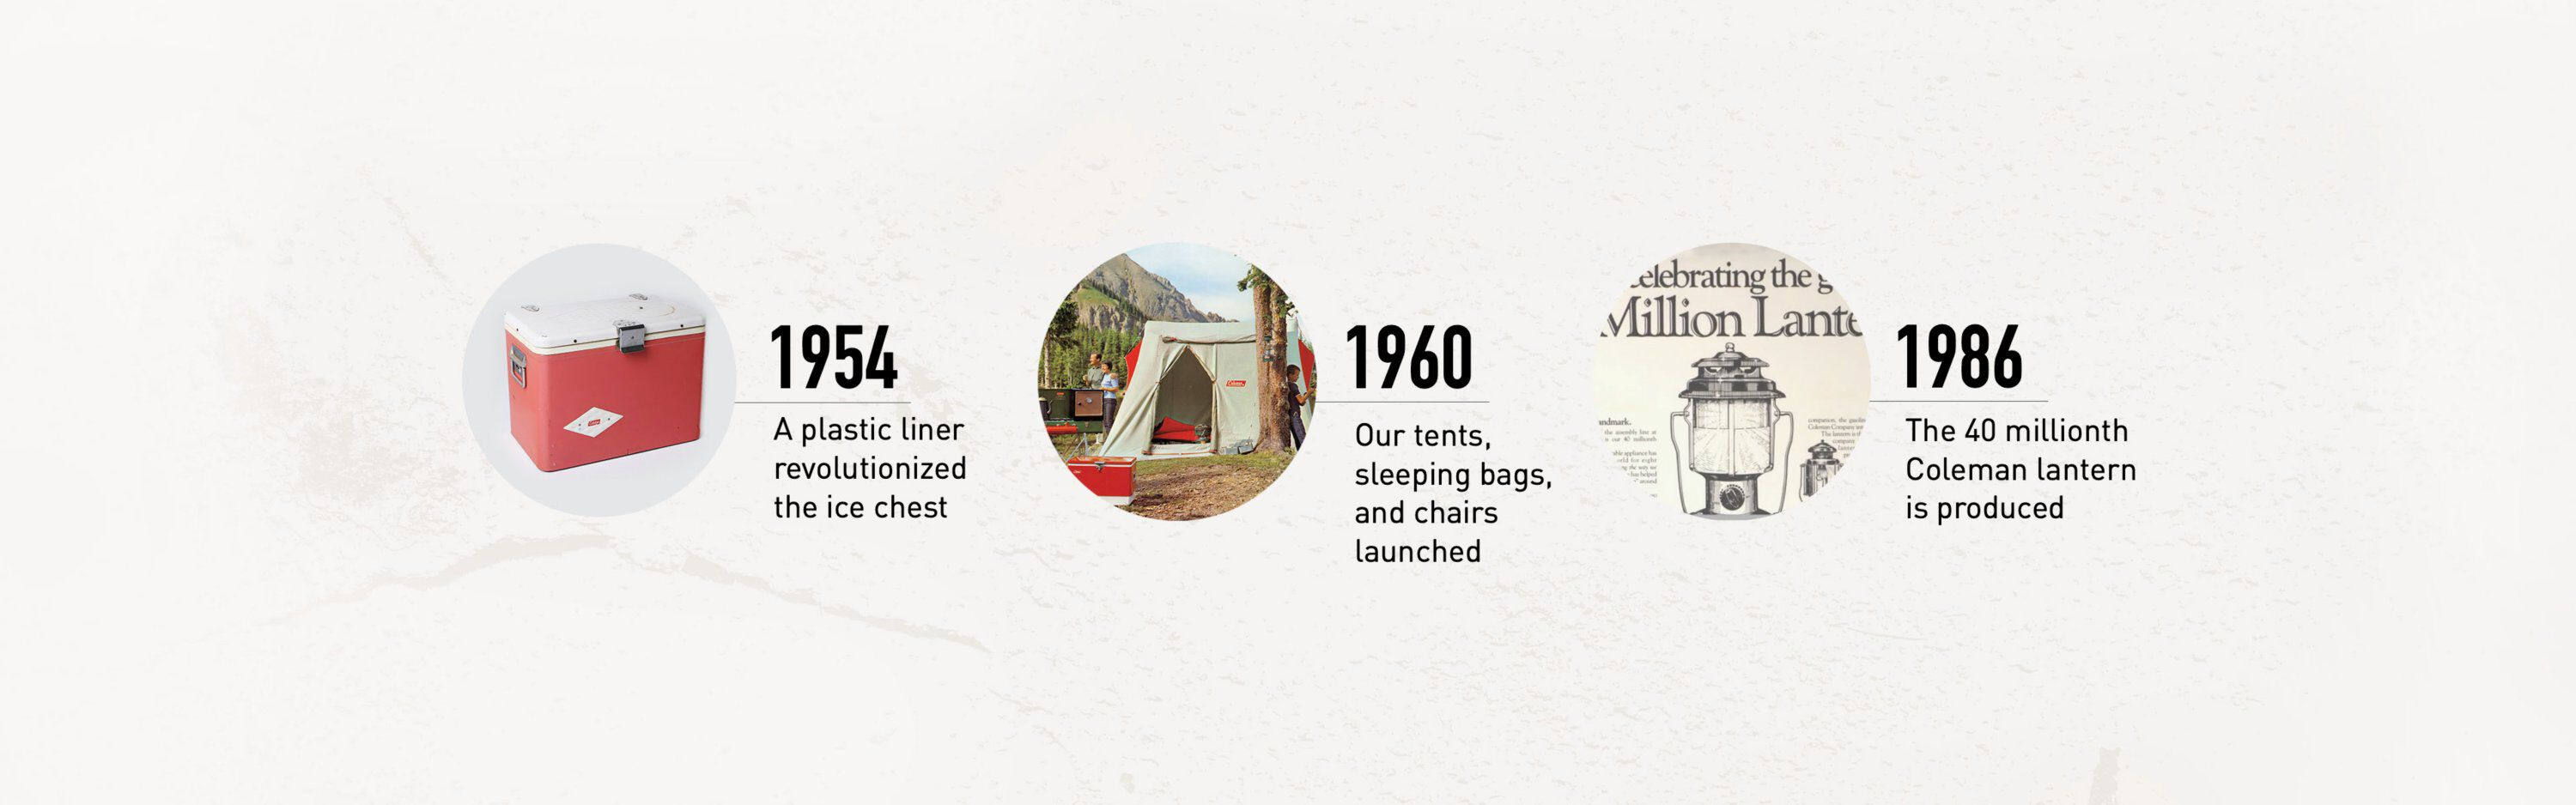 Timeline - 1954 ice chest launch, 1960 tents, sleeping bags and chairs launched, 1986 40 million lanterns made